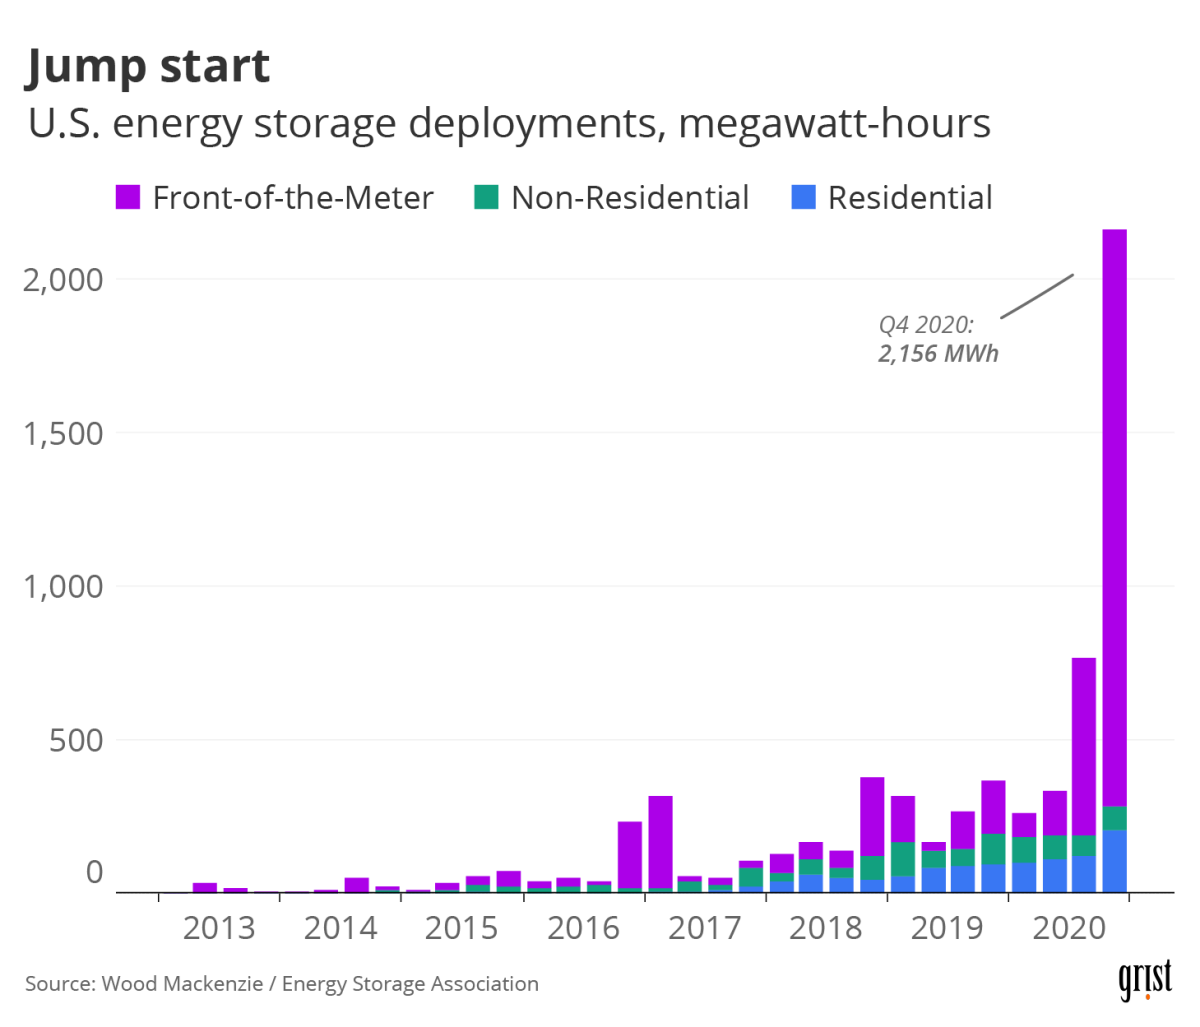 A bar chart showing U.S. energy storage deployments by quarter over the past decade. Q4 2020 (at 2,156 megawatt-hours) outpaces anything seen thus far.